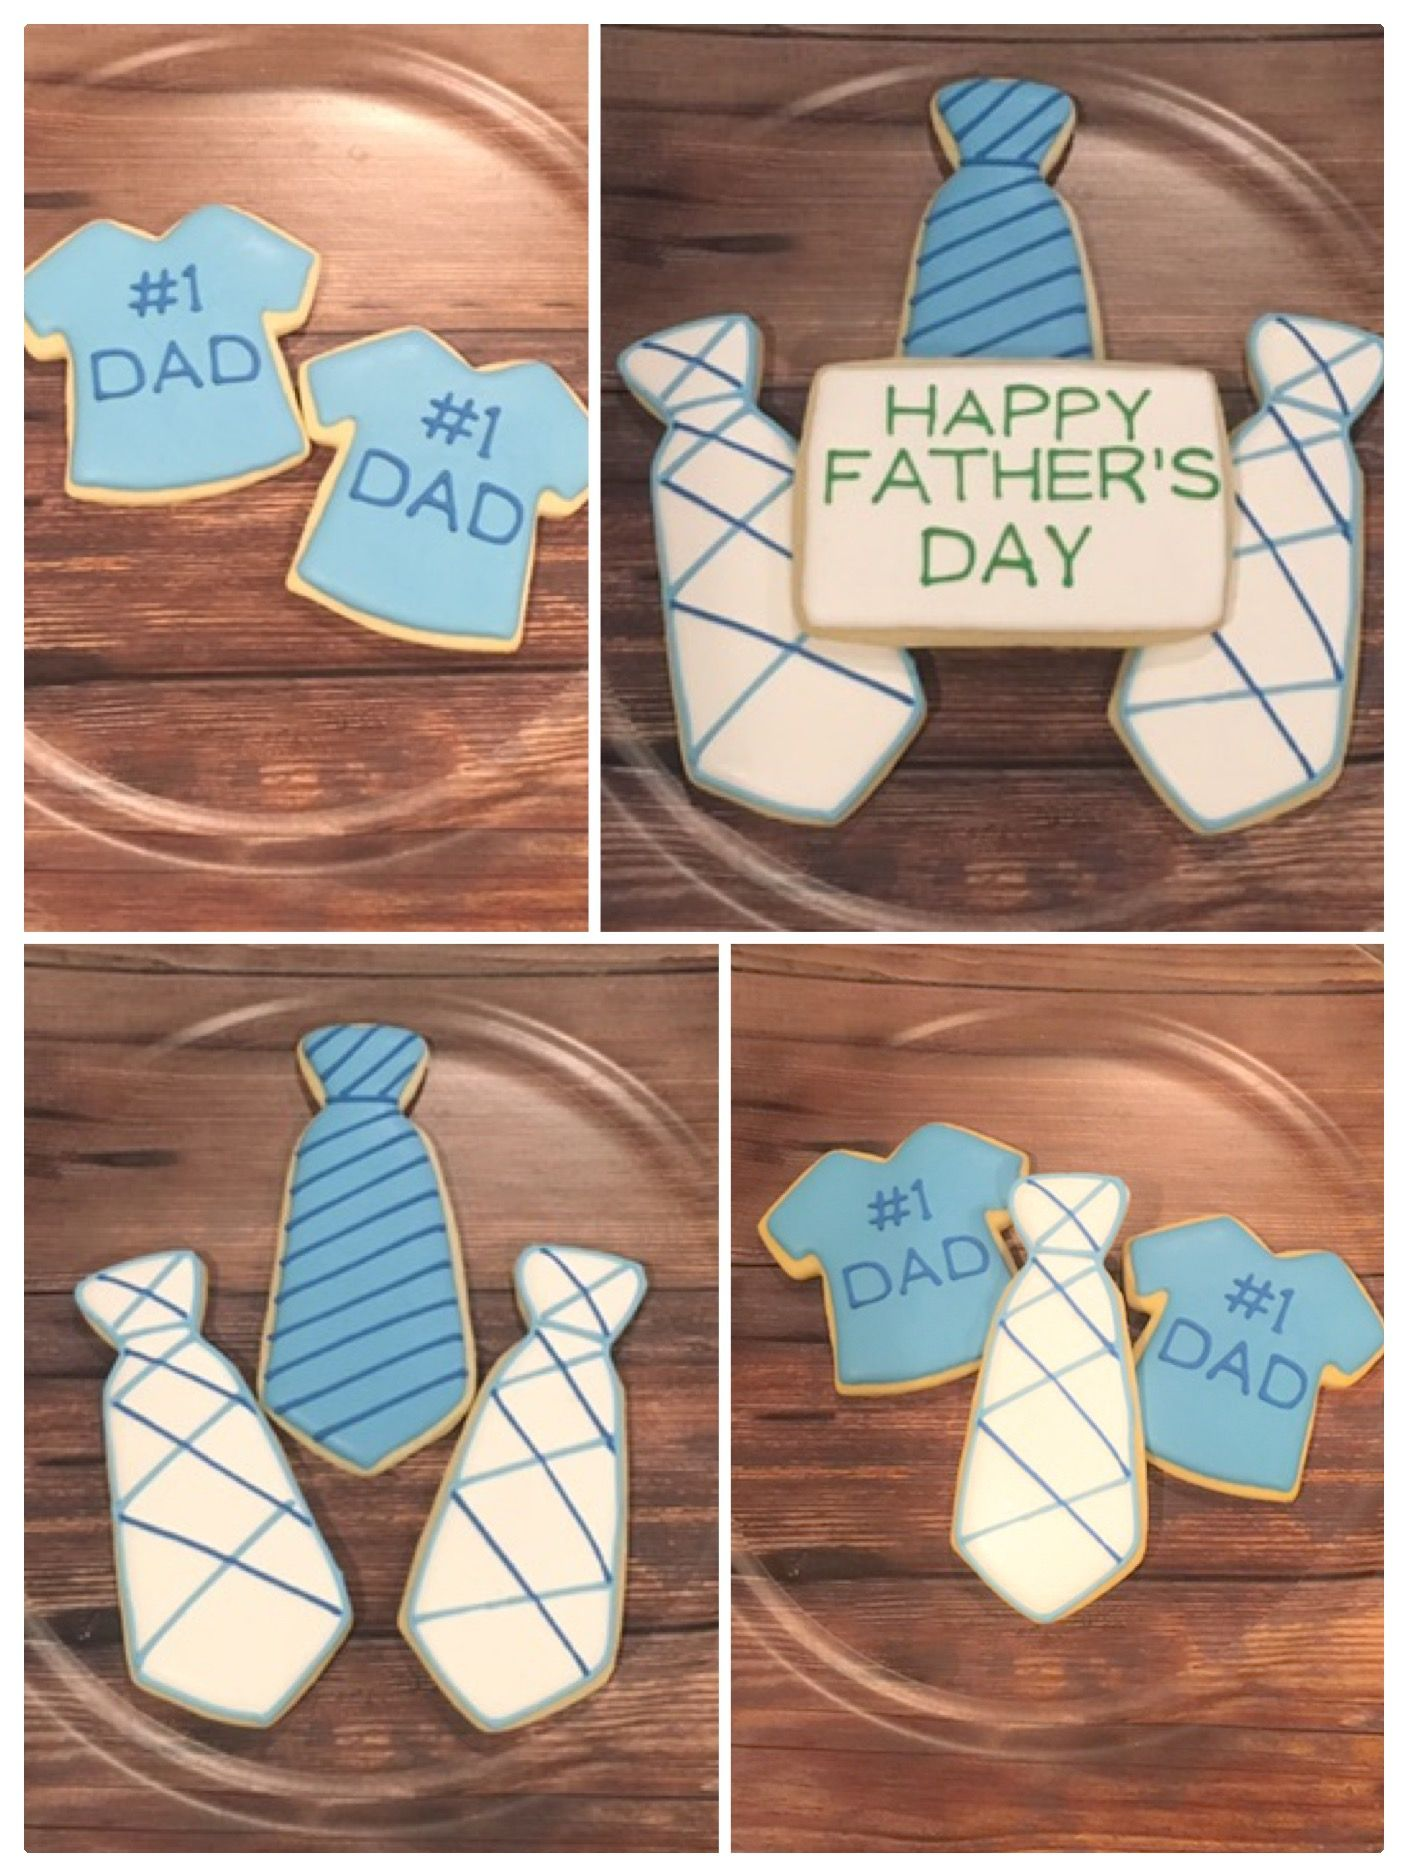 Fathers day cookies neckties 1 dad cookies fathers day